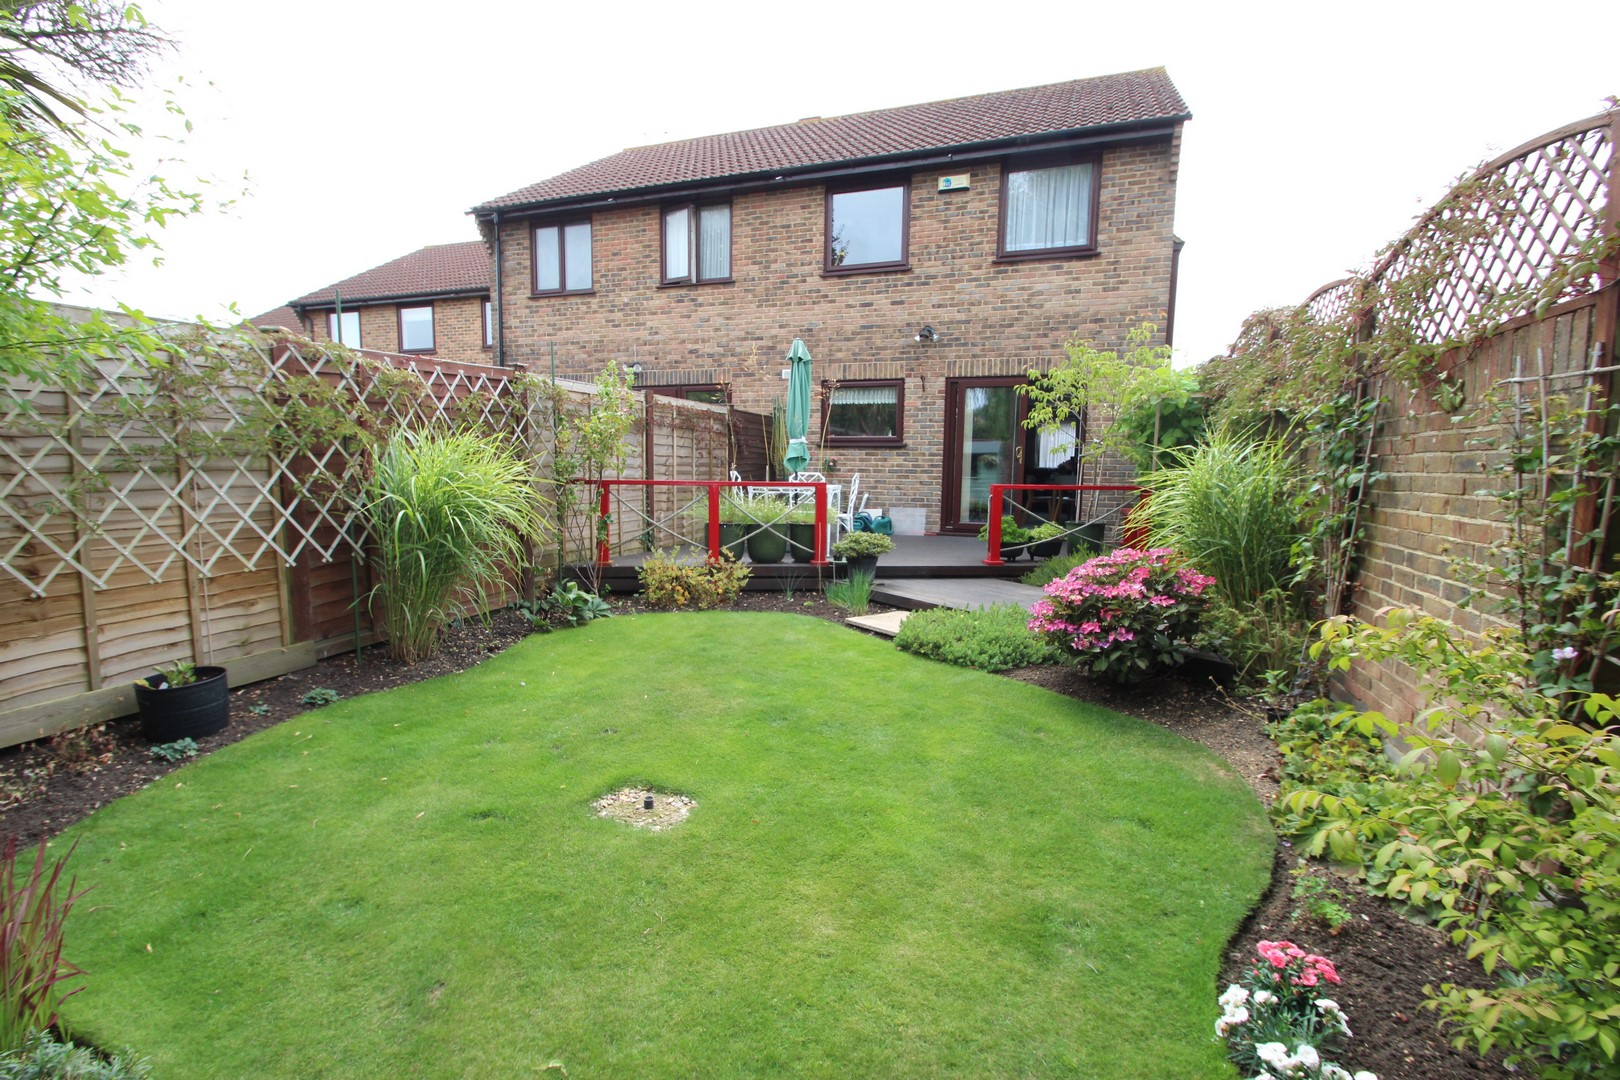 3 Bed End of Terrace House in Stanpit